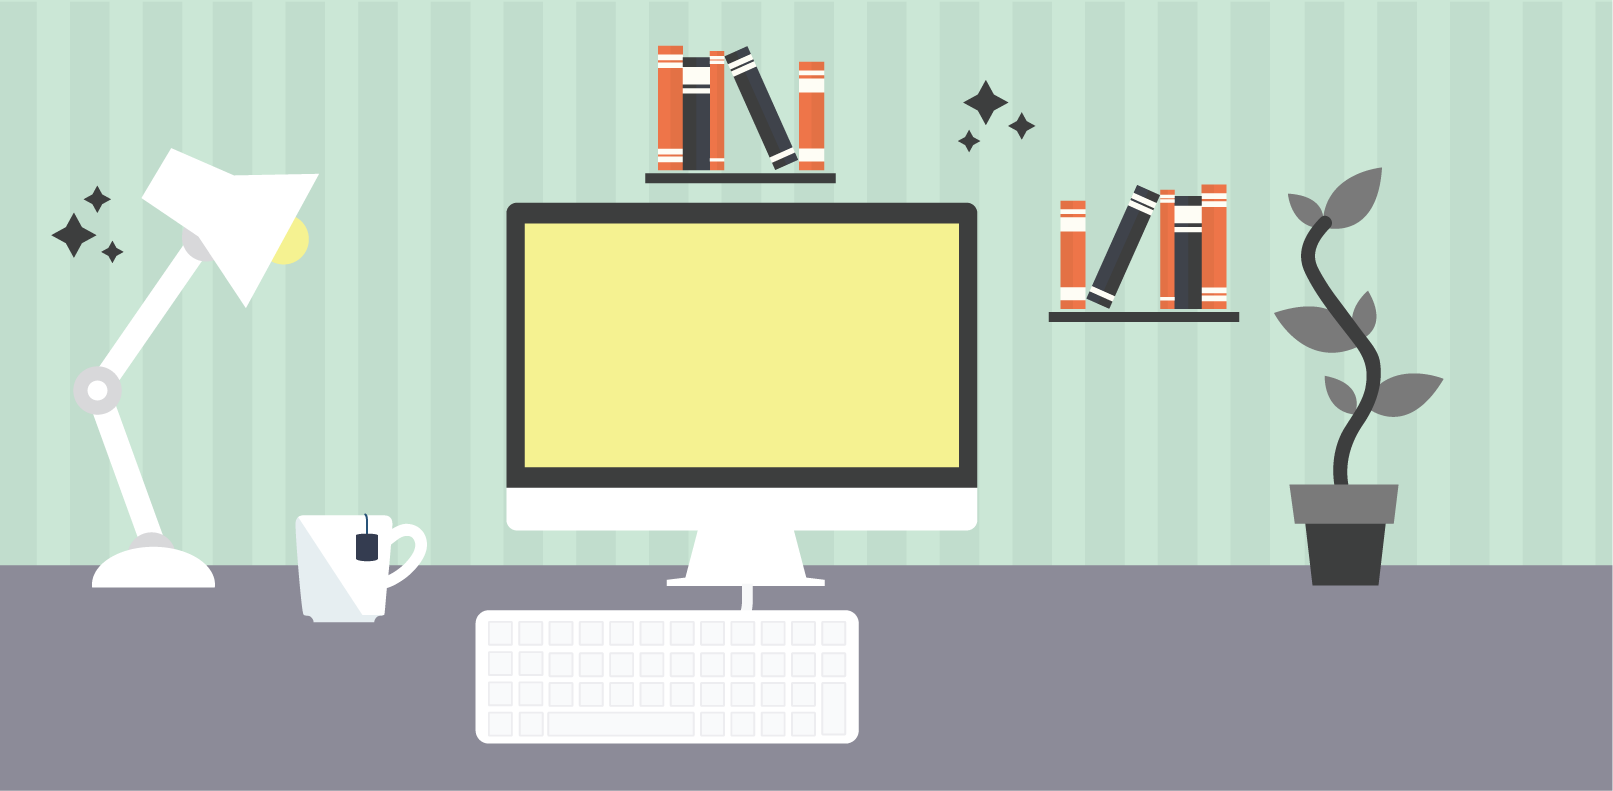 4 Tips for Managing Remote Employees